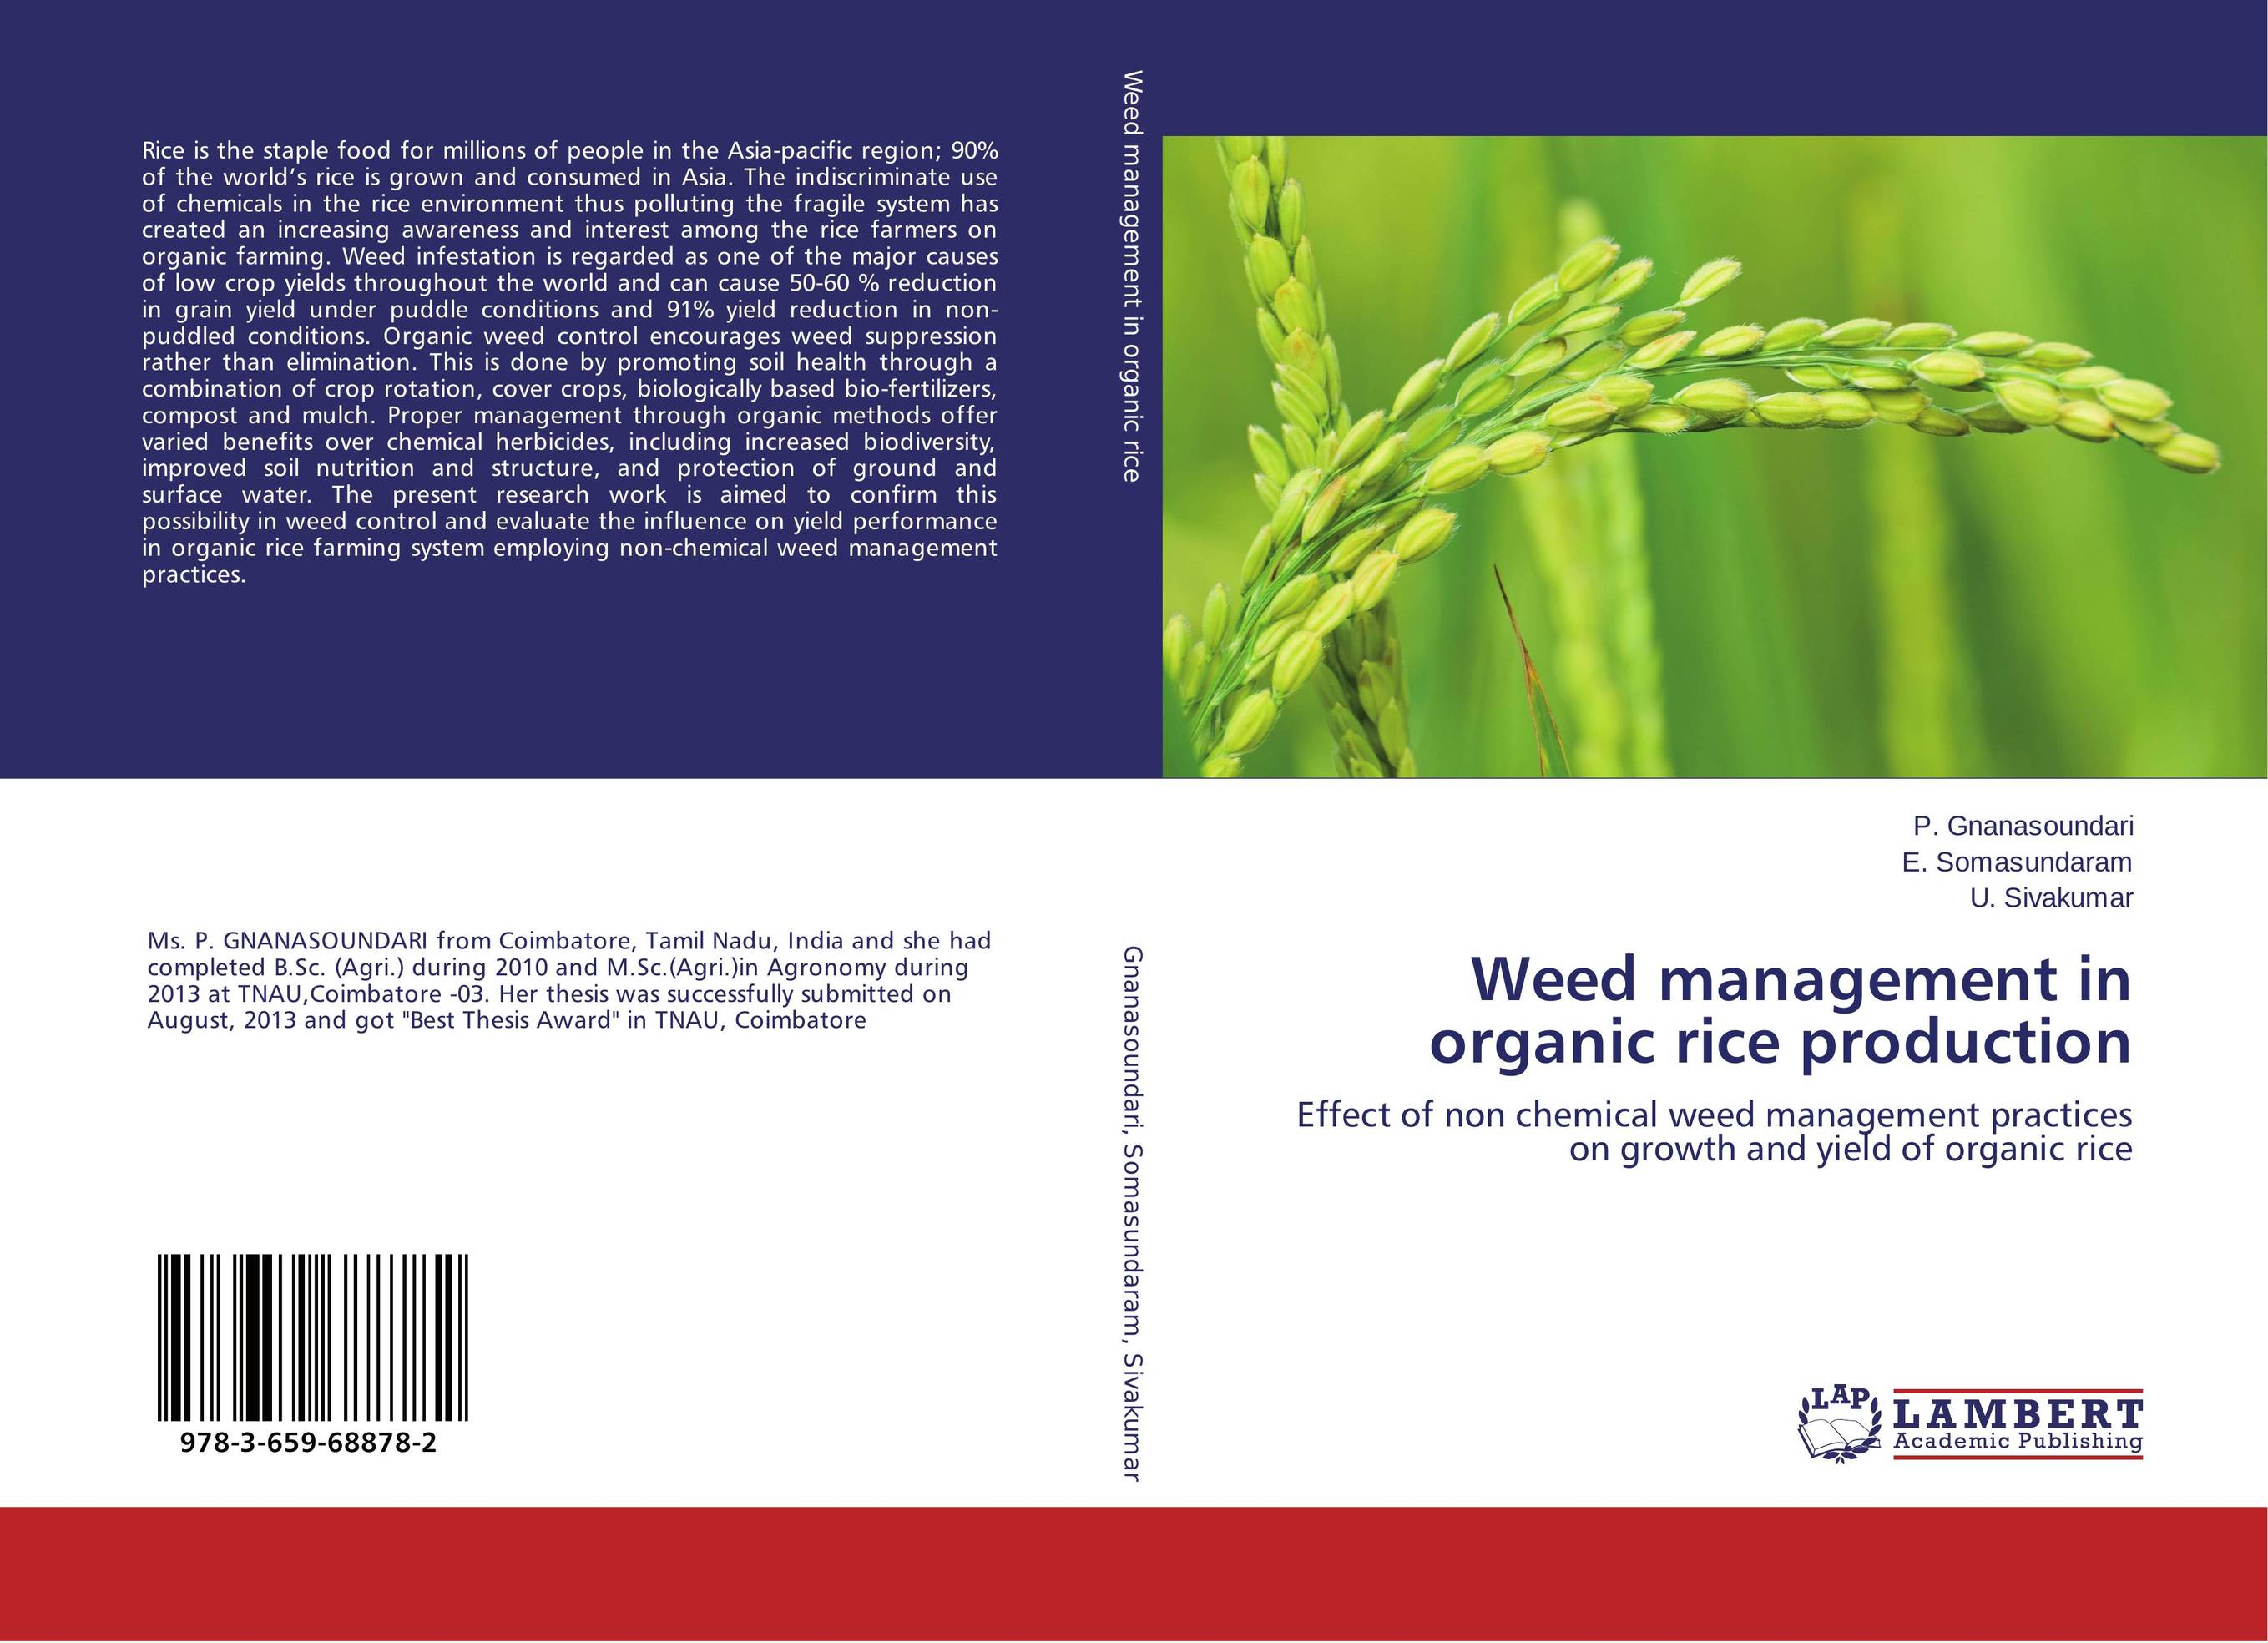 Weed management in organic rice production weed management in rice wheat system